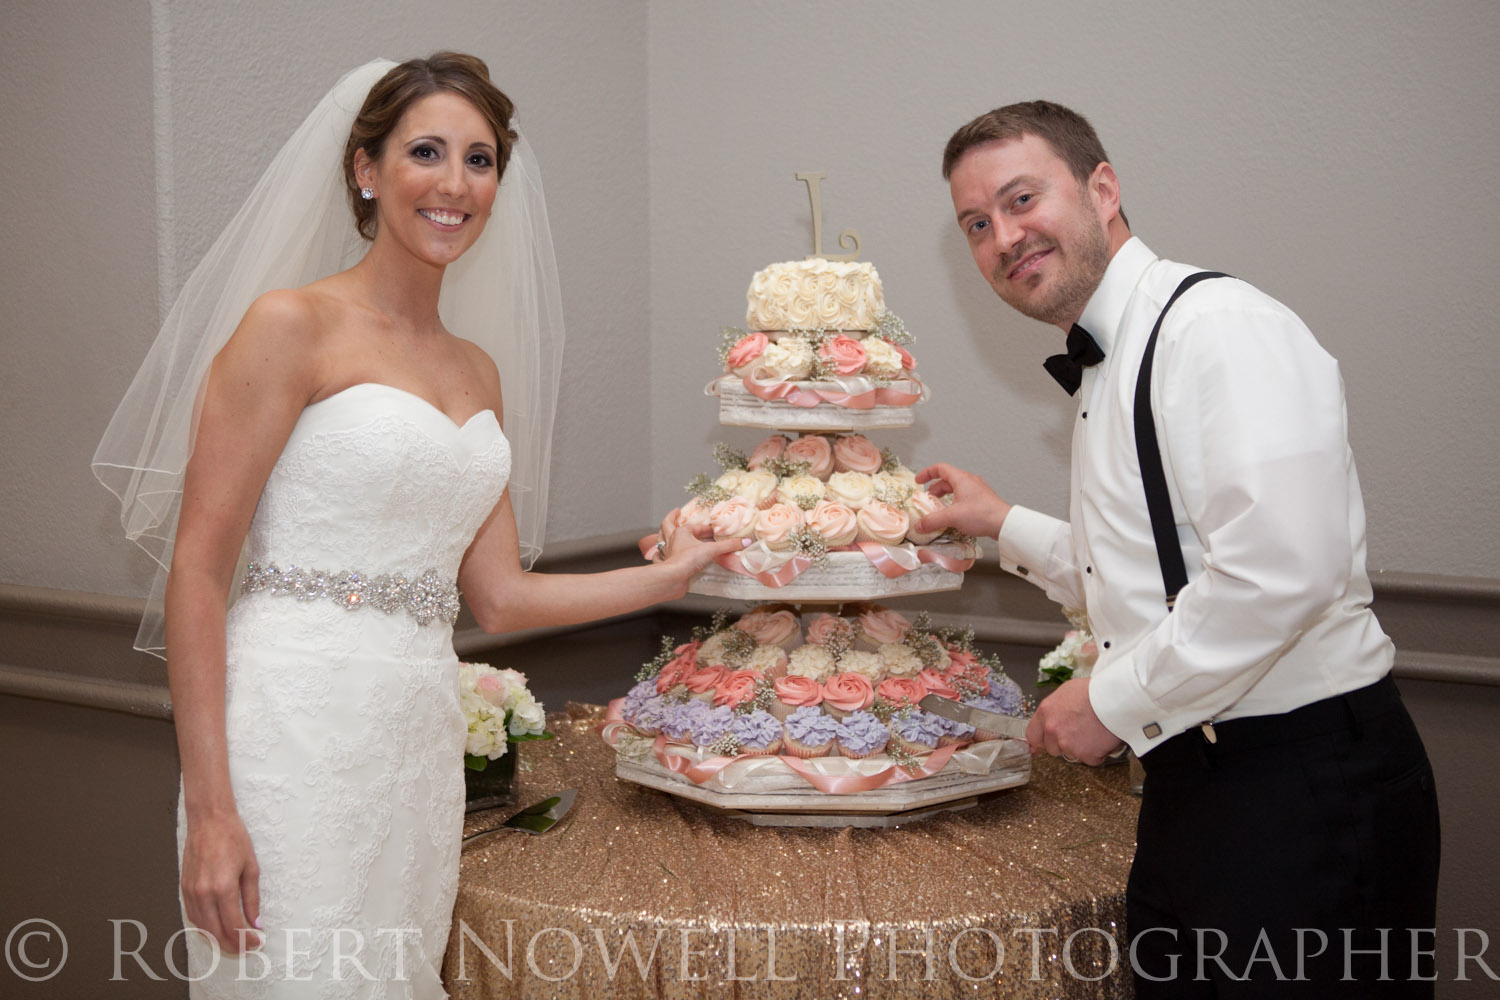 wedding cupcakes, Niagara photography